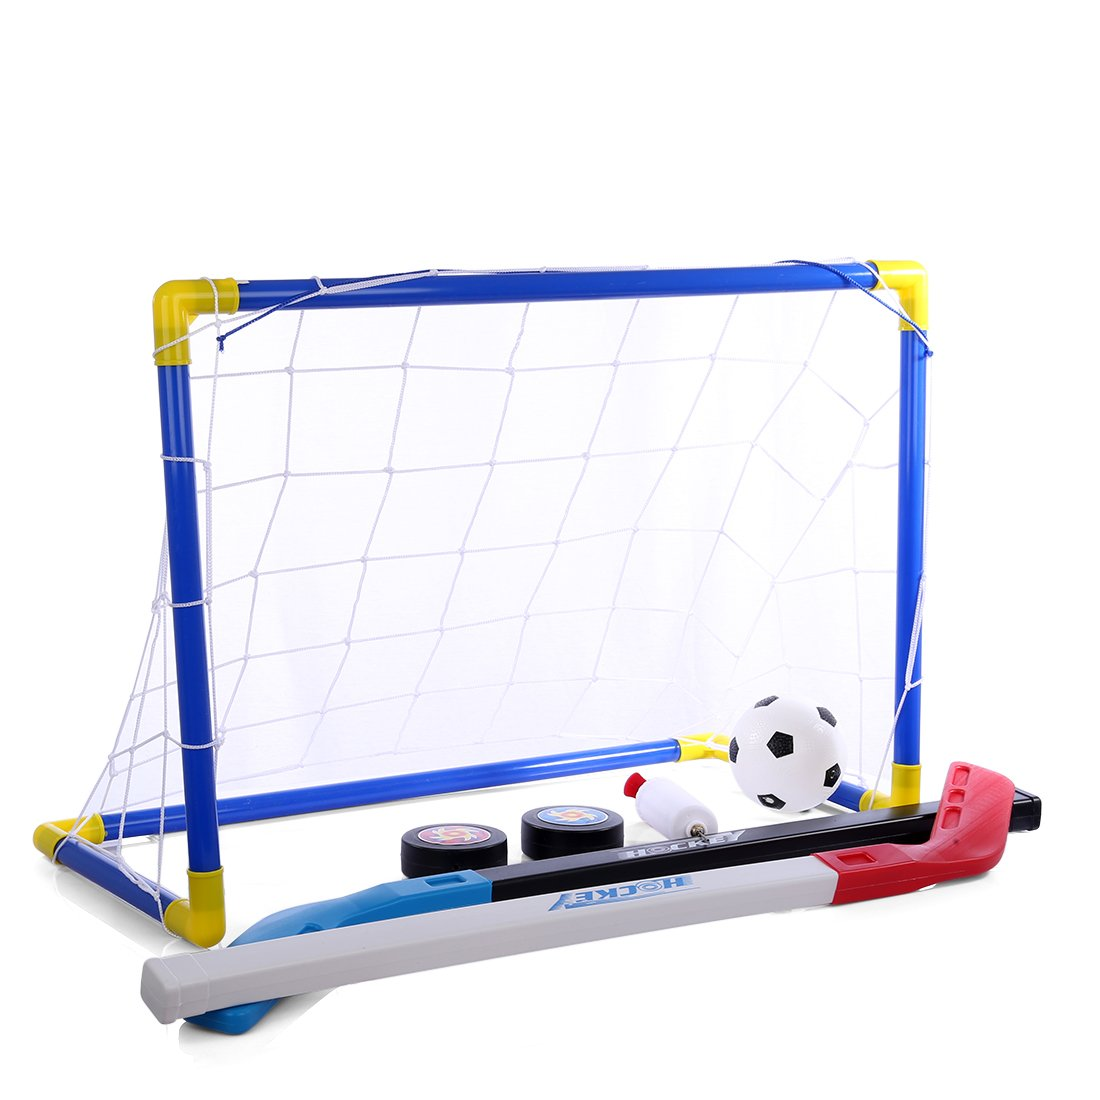 Fcoson Mini Hockey Goal Set Portable Soccer Training Net with Ball and Pump for Kids Toddlers Youth